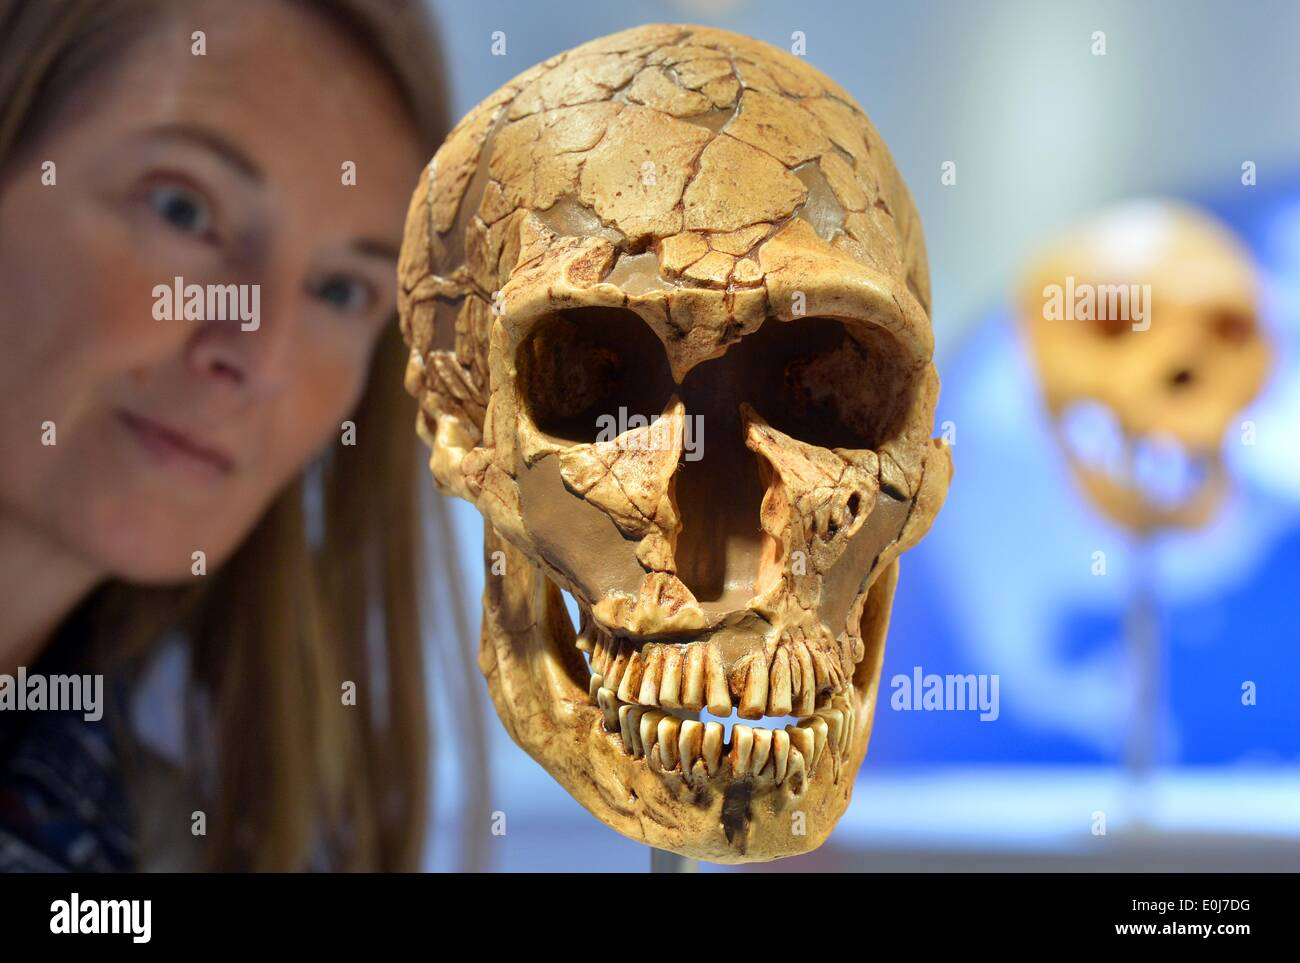 Chemnitz, Germany. 14th May, 2014. Museum educator Sabine Liener-Kraft looks at the replica of a skull of a Neanderthal Stock Photo